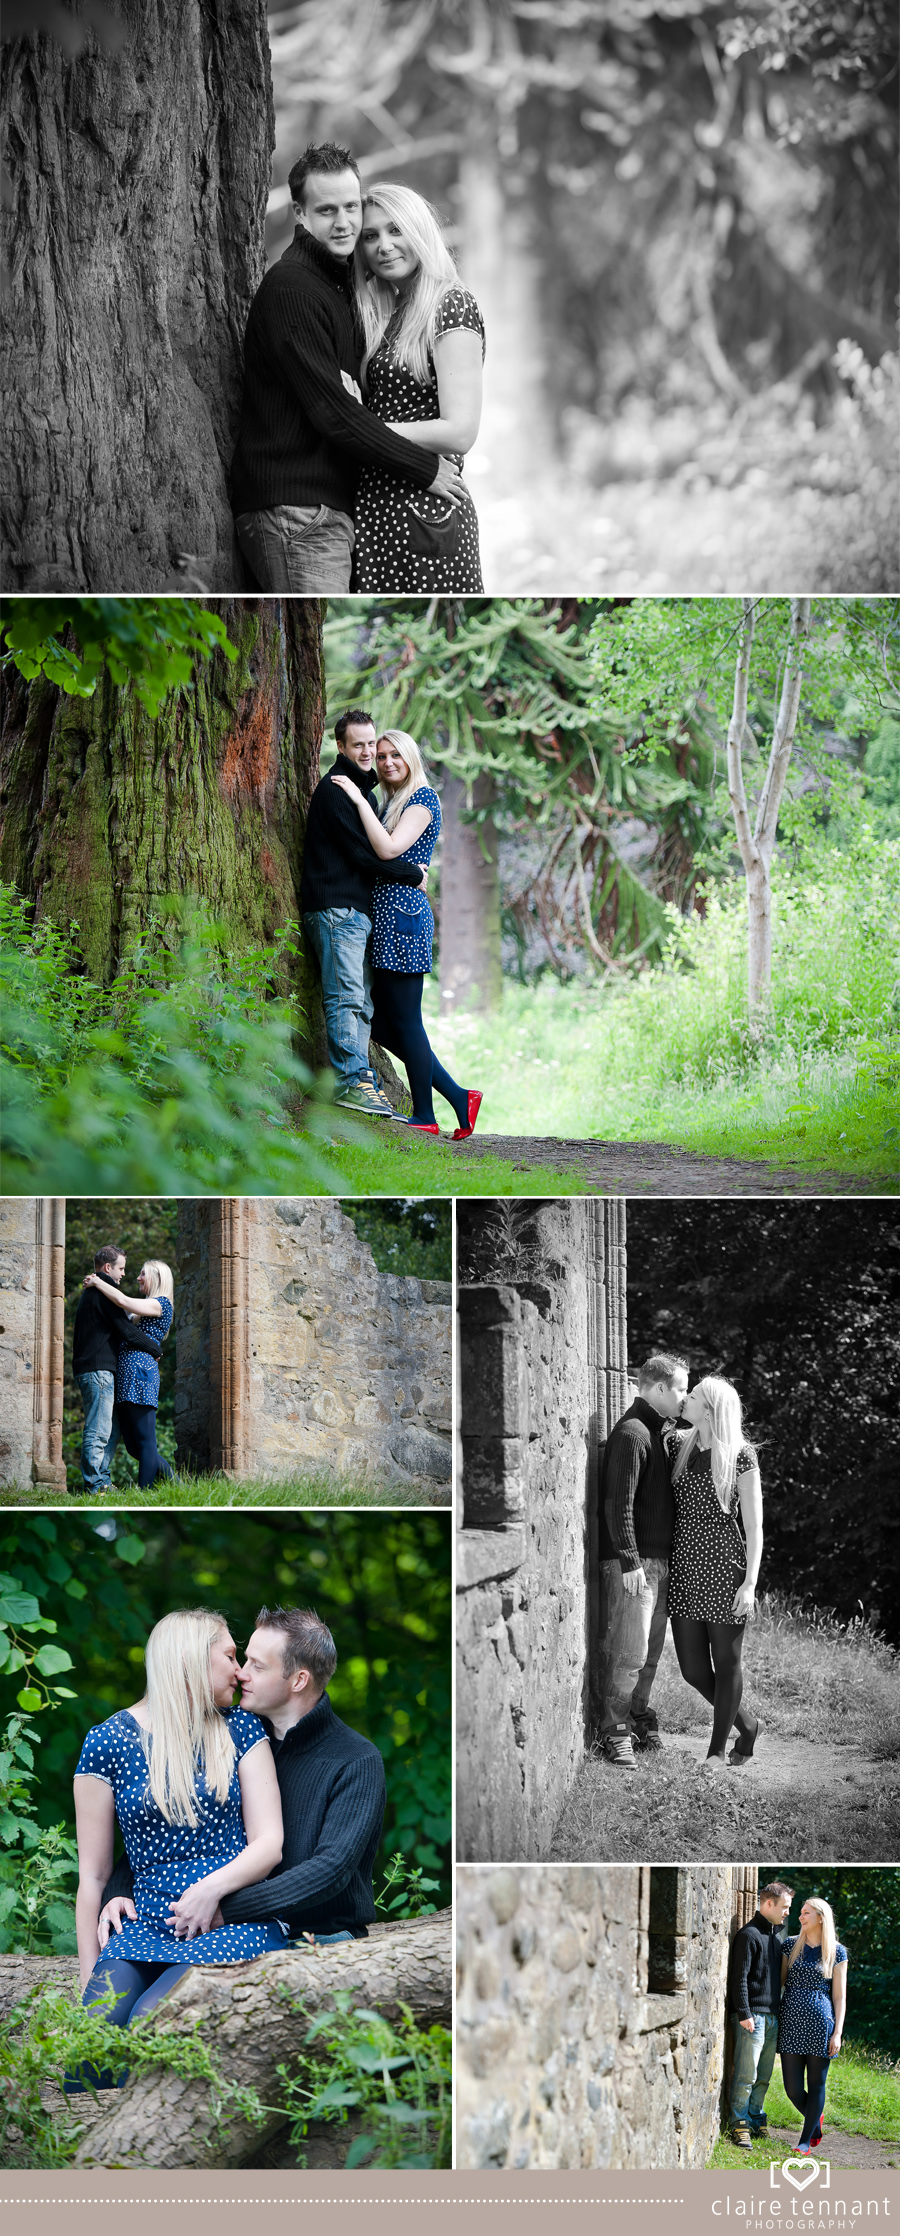 Jenna & Ewans pre wedding shoot at Cammo Woods, Edinburgh